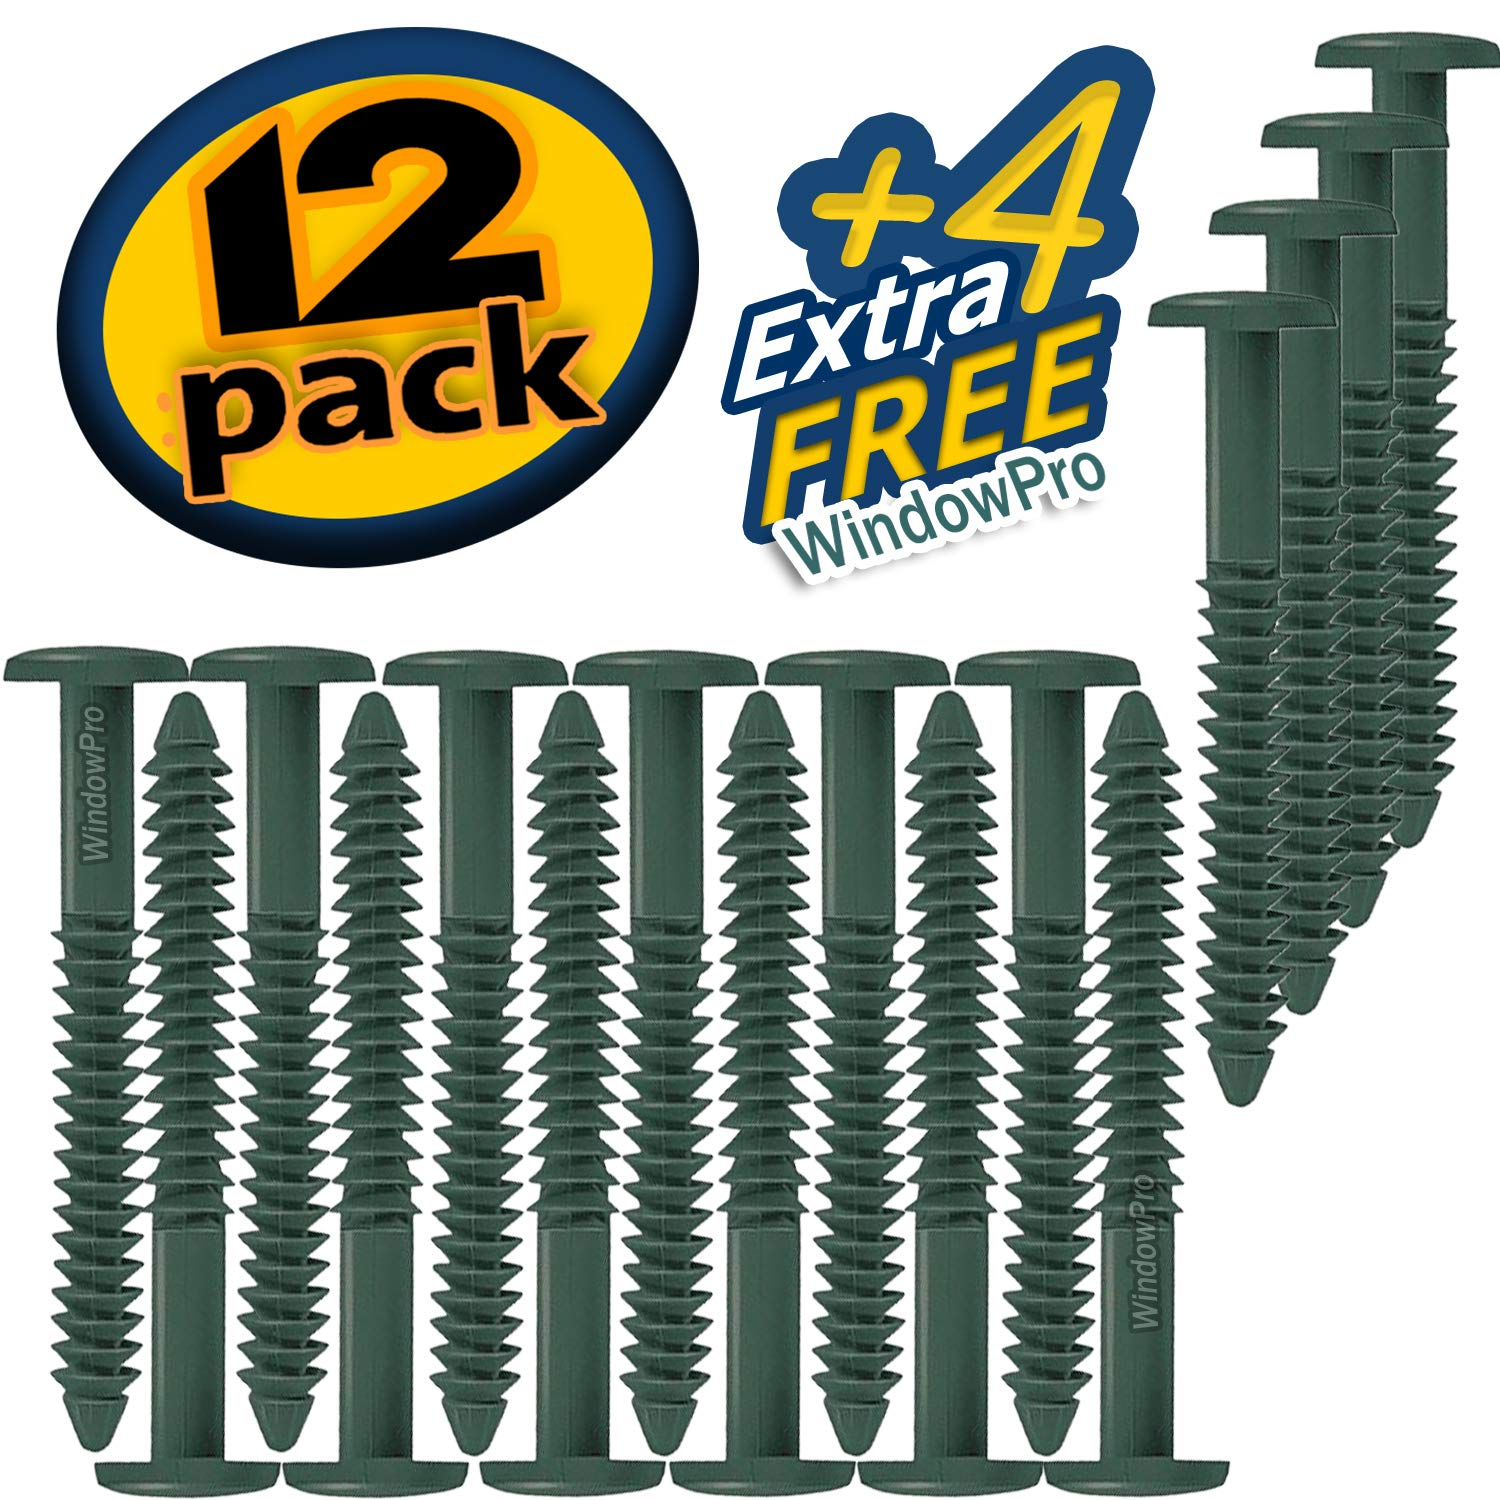 Window Shutters Panel Peg Loks 3 inch 12 pack Forest Green Buy One Bag of 12 Loks and Get 4 Extra Shutter Peg Loks FREE